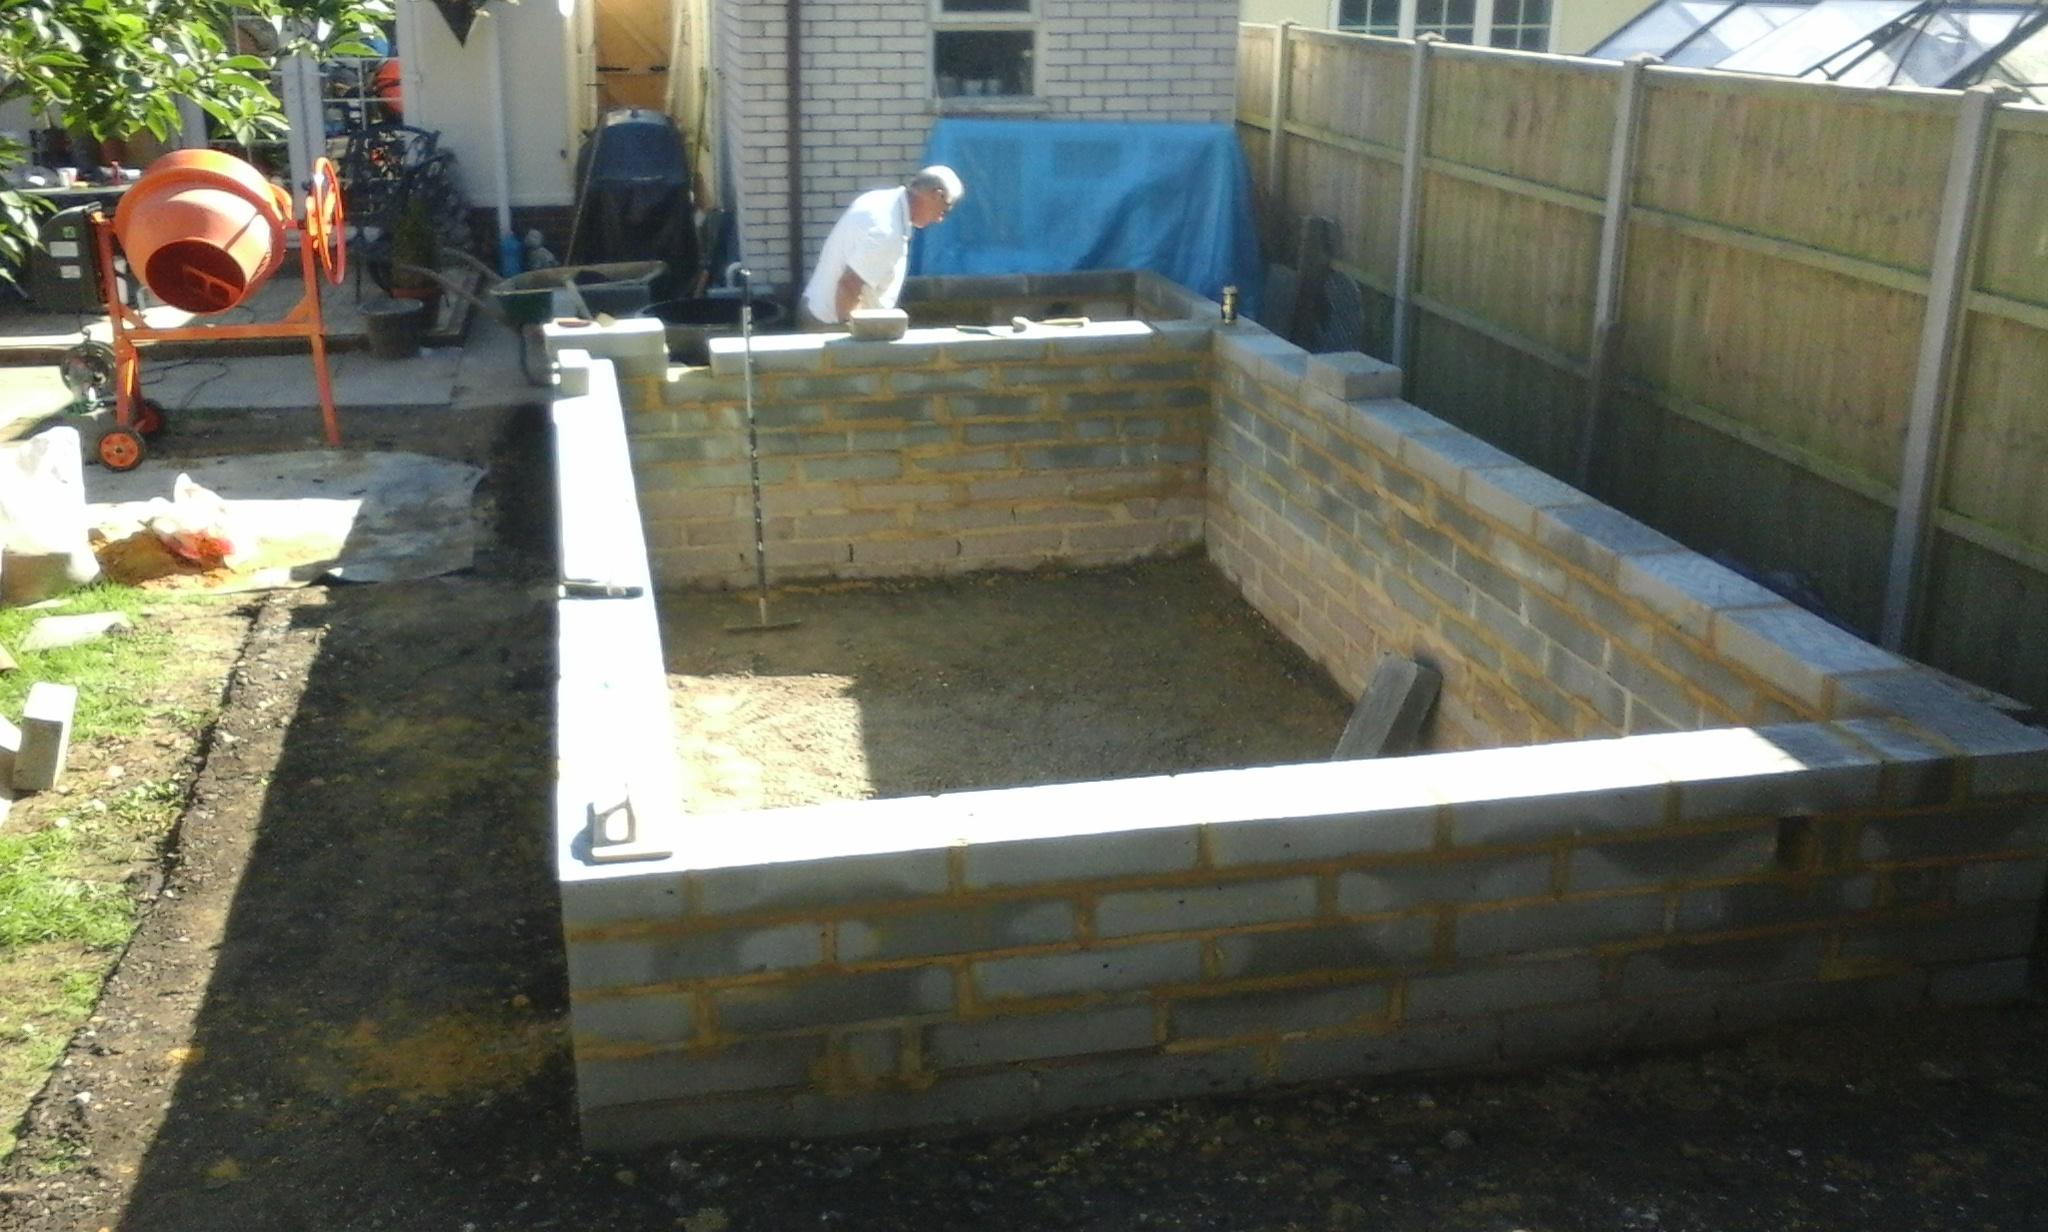 Dorset pond design construction maintenance pond stars uk for Koi pond design and construction